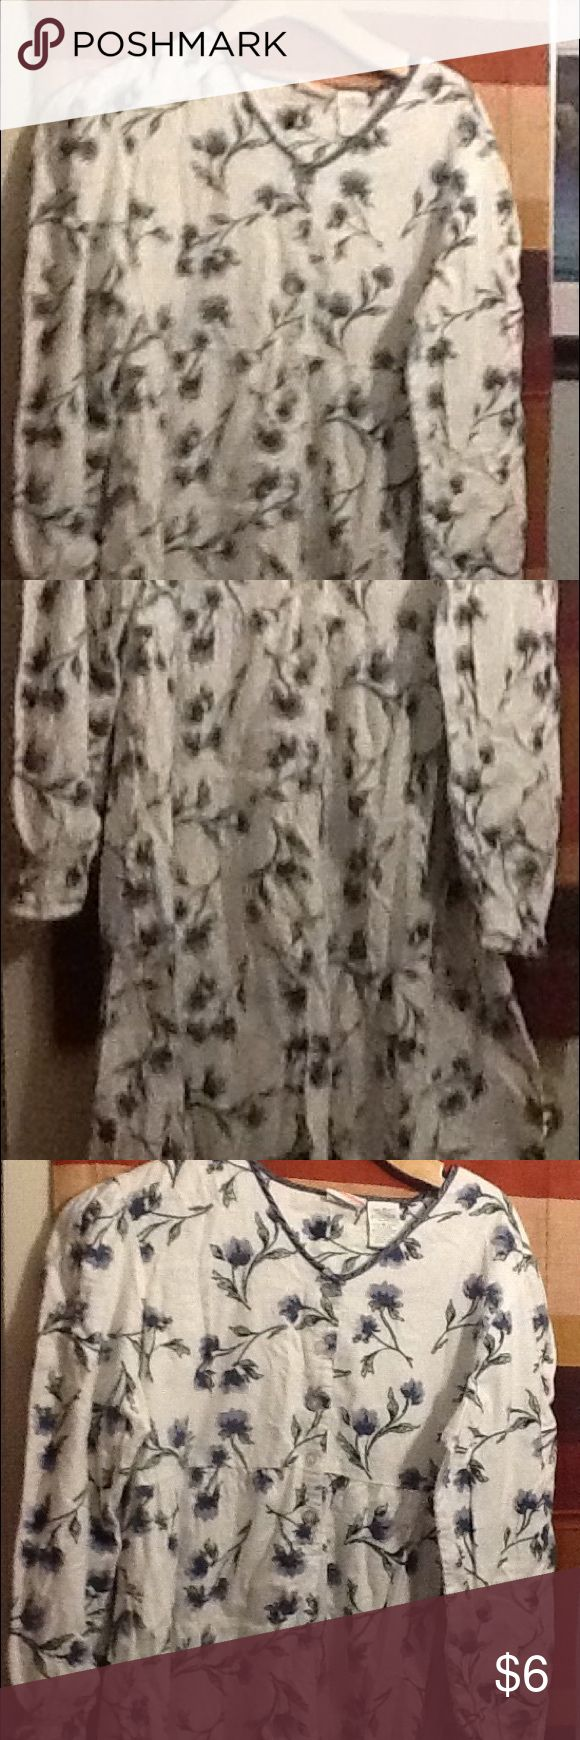 Women's pajama gown This is just women's pajama gown. It feels like a flannel material. It is long and long sleeves, with flowers. simply basic Intimates & Sleepwear Pajamas